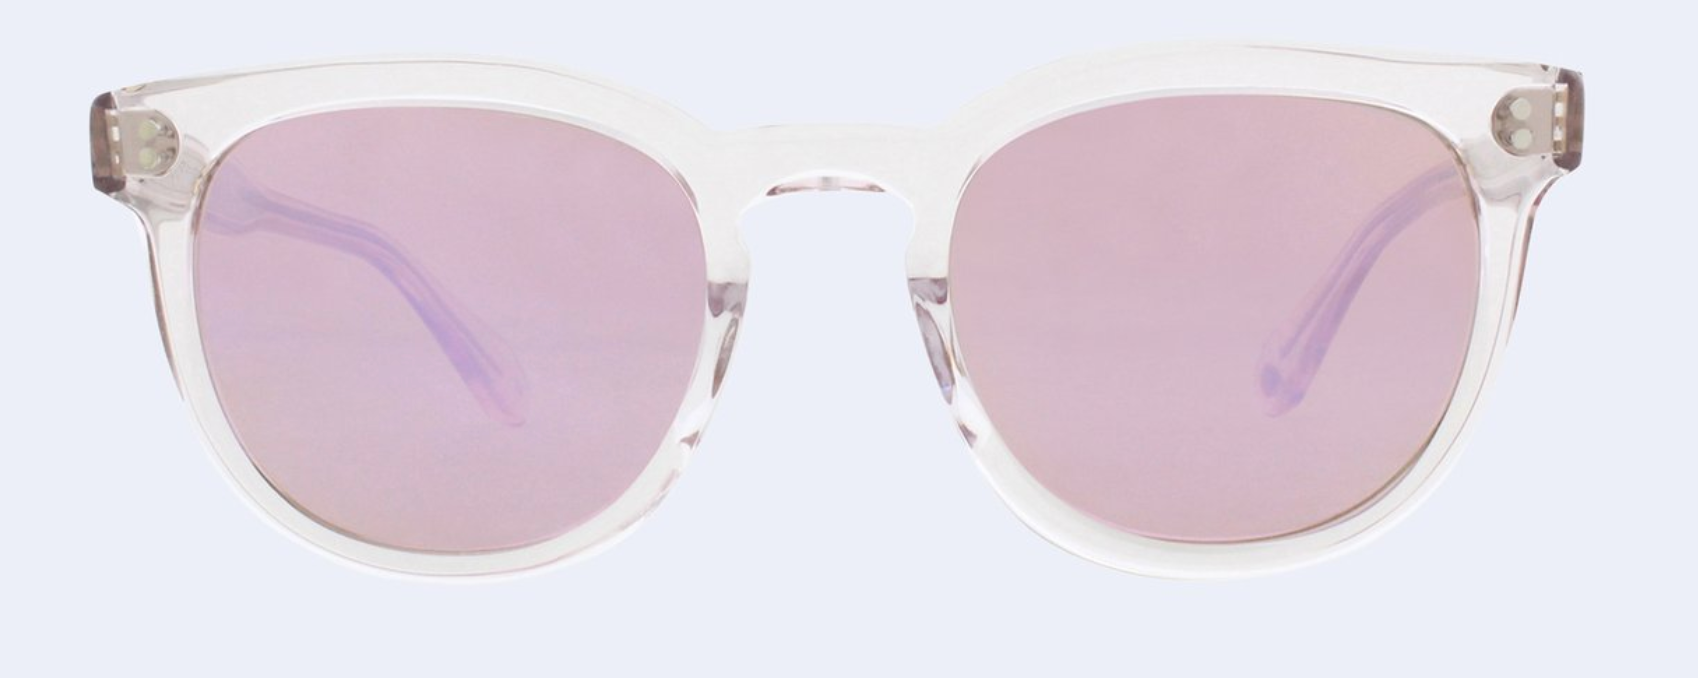 Garrett Leight Granada Sun in Lavender with Amethyst Mirror Lens